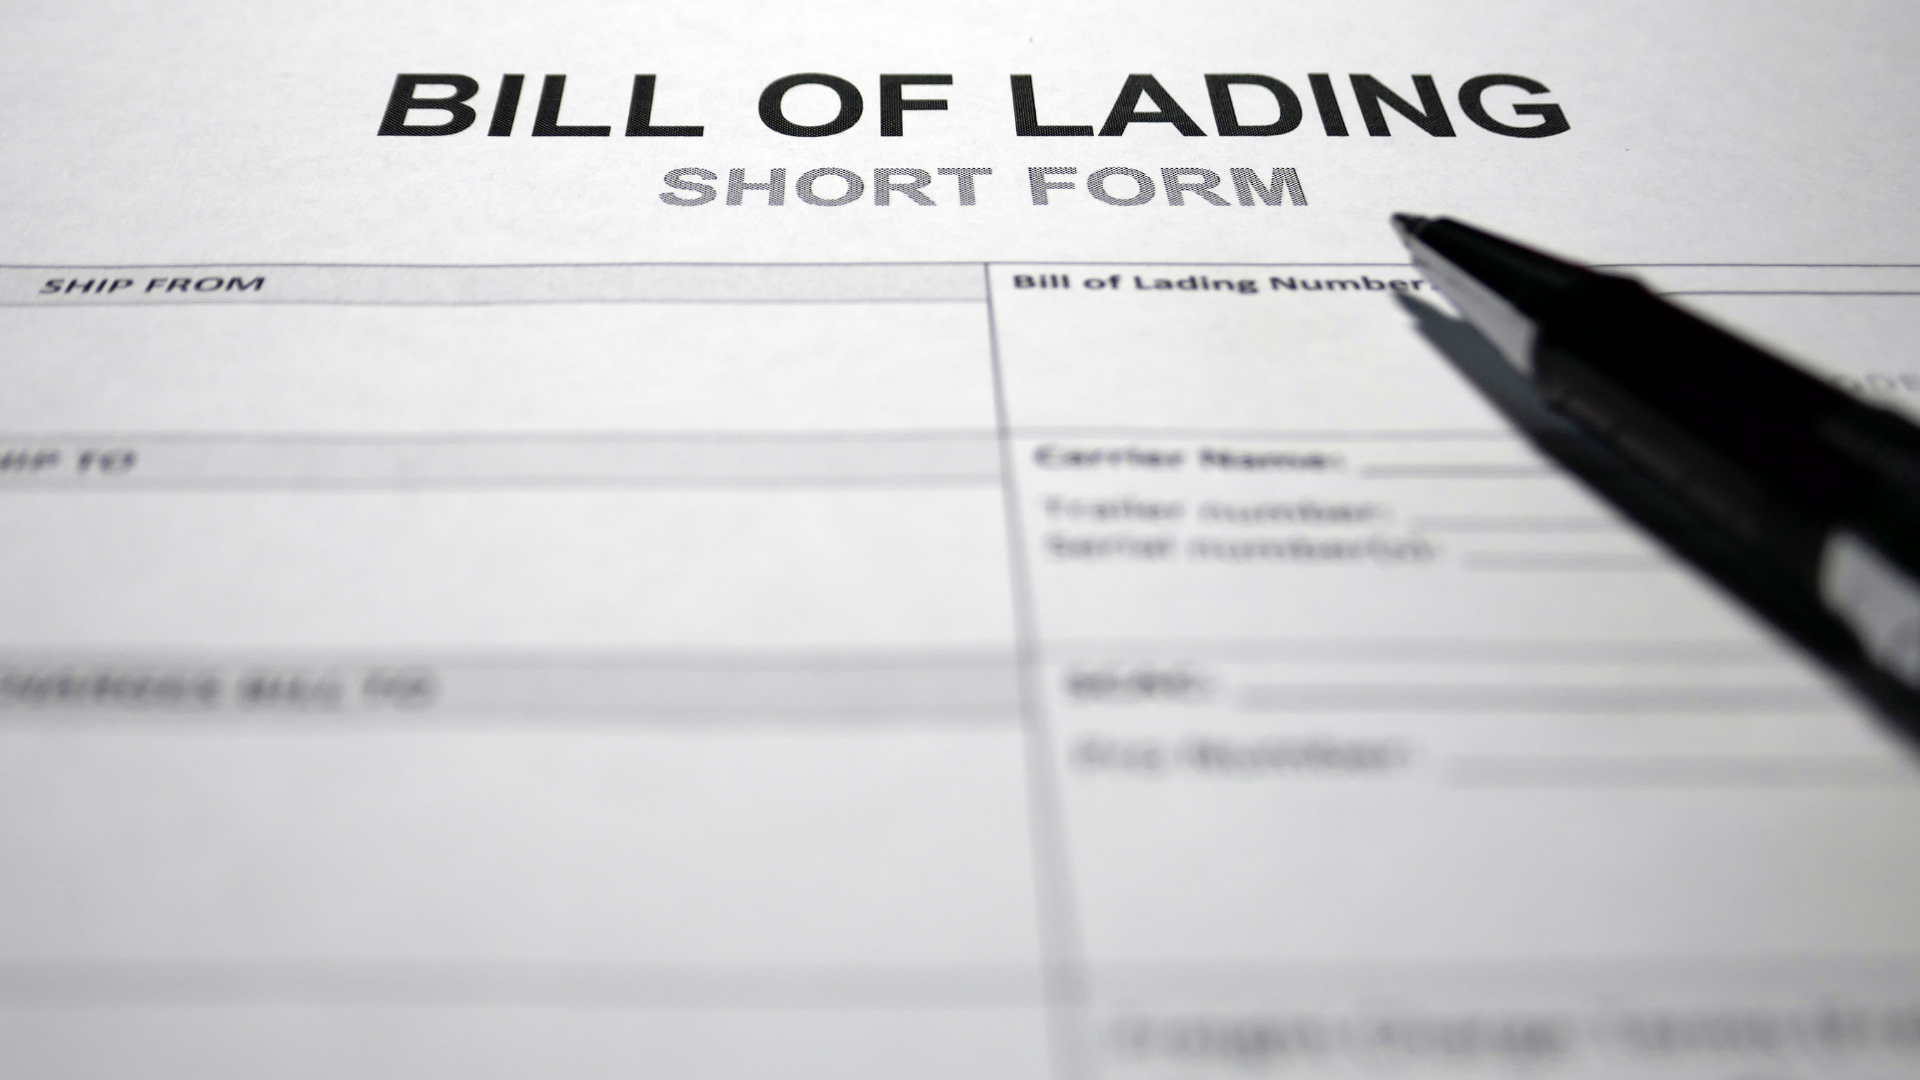 What Is a Bill of Lading?